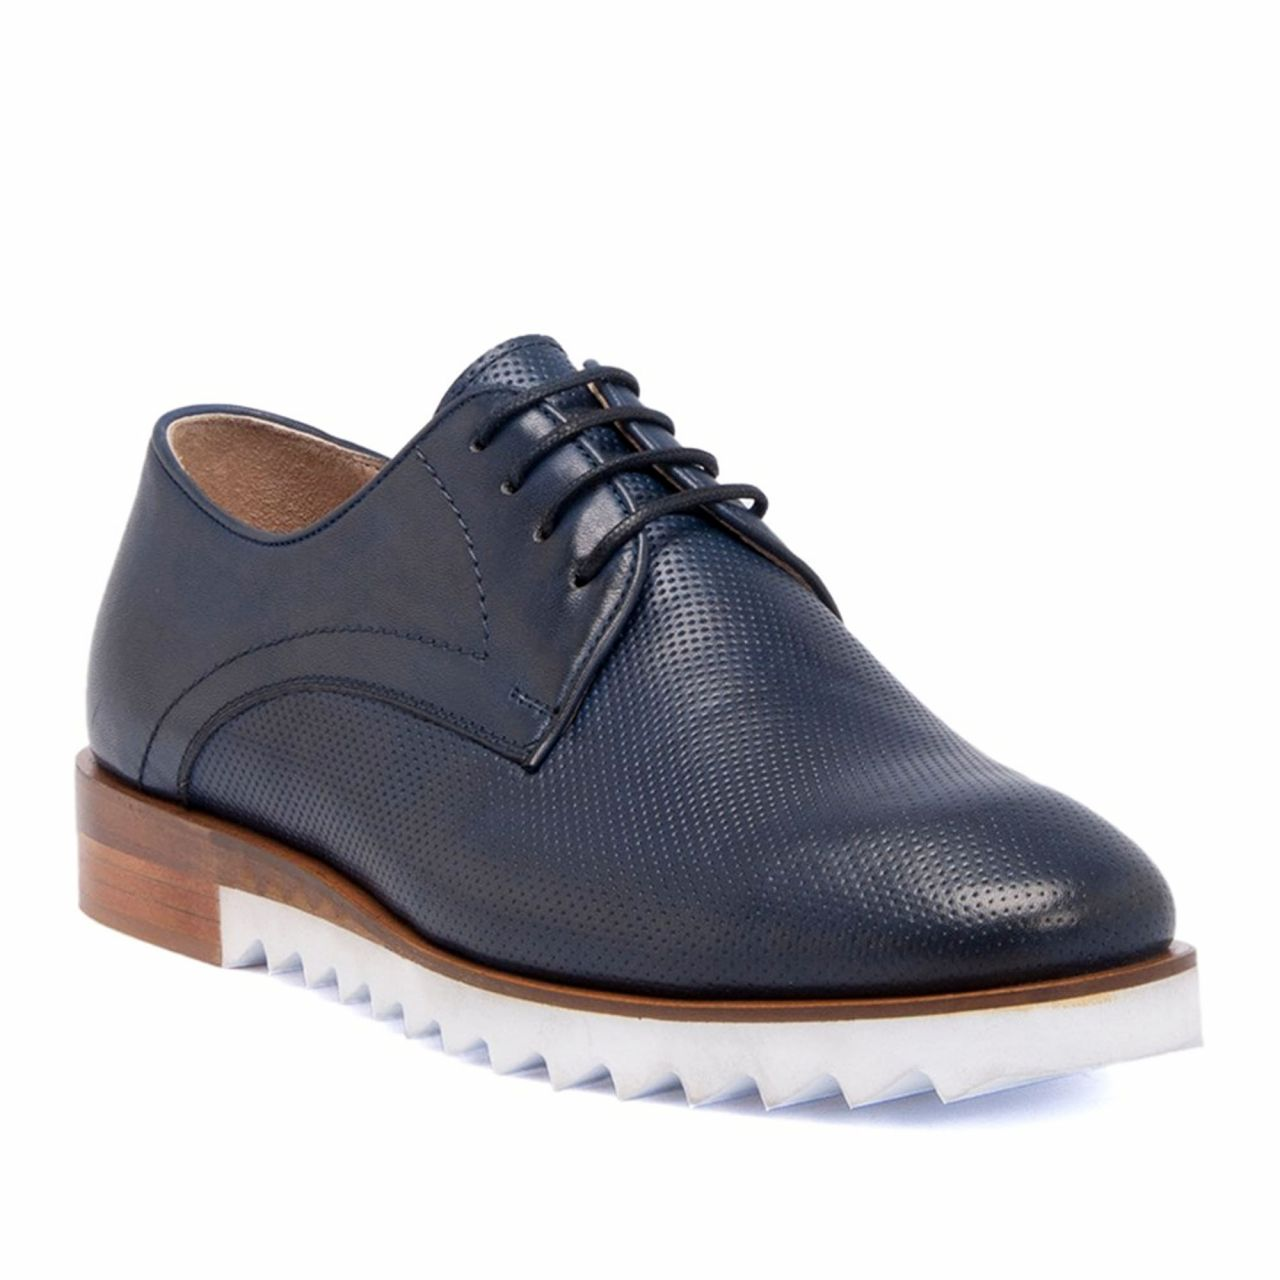 Blue Perforated Genuine Leather Shoes